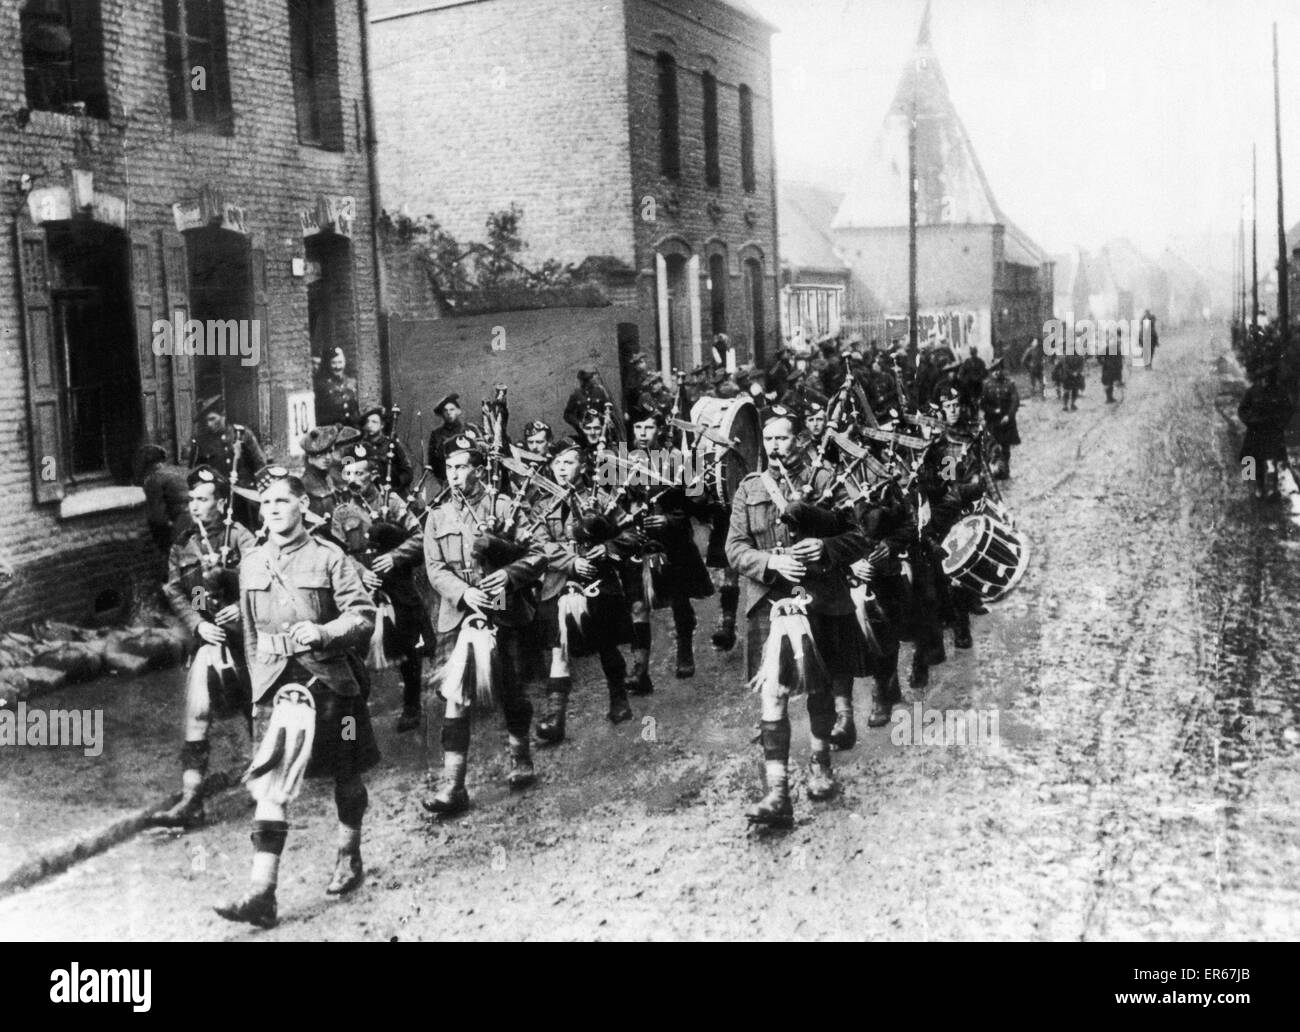 Pipers believe to be from the Cameron Highlander Regiment marching to the frontline during the Battle of the Somme. - Stock Image